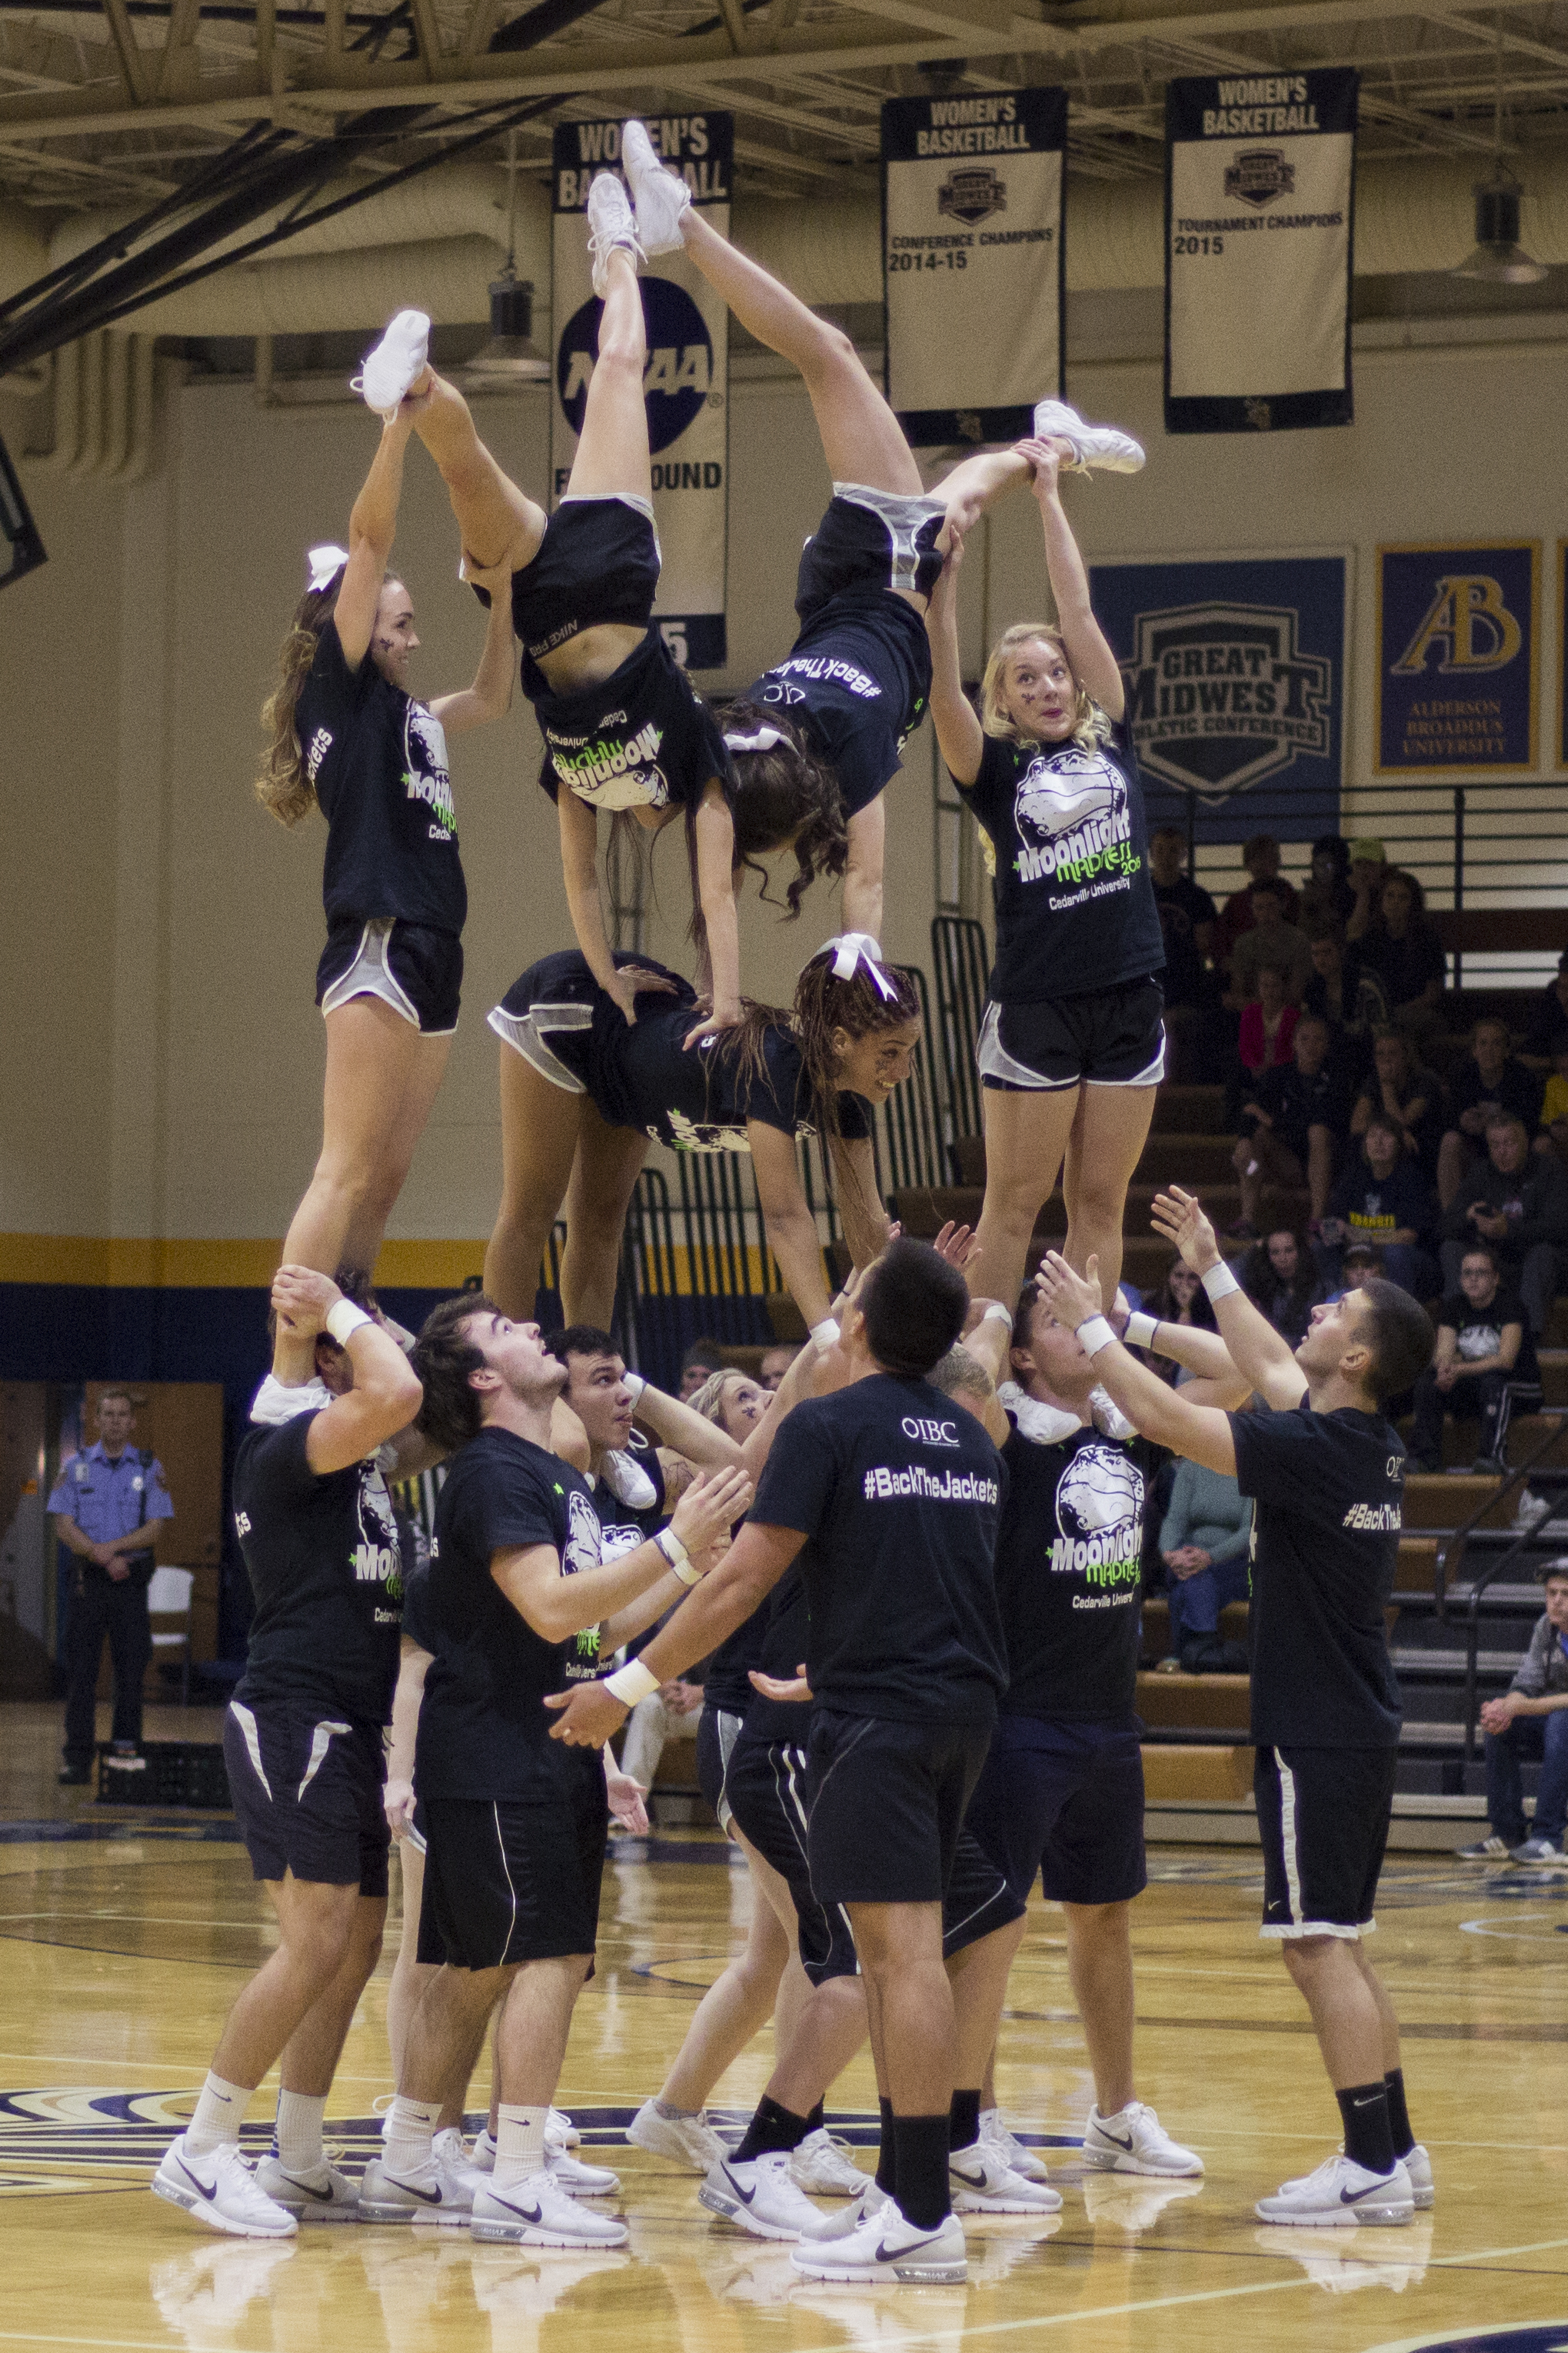 Moonlight Madness also gives the cheerleaders a chance to showcase what they have in store for this season.